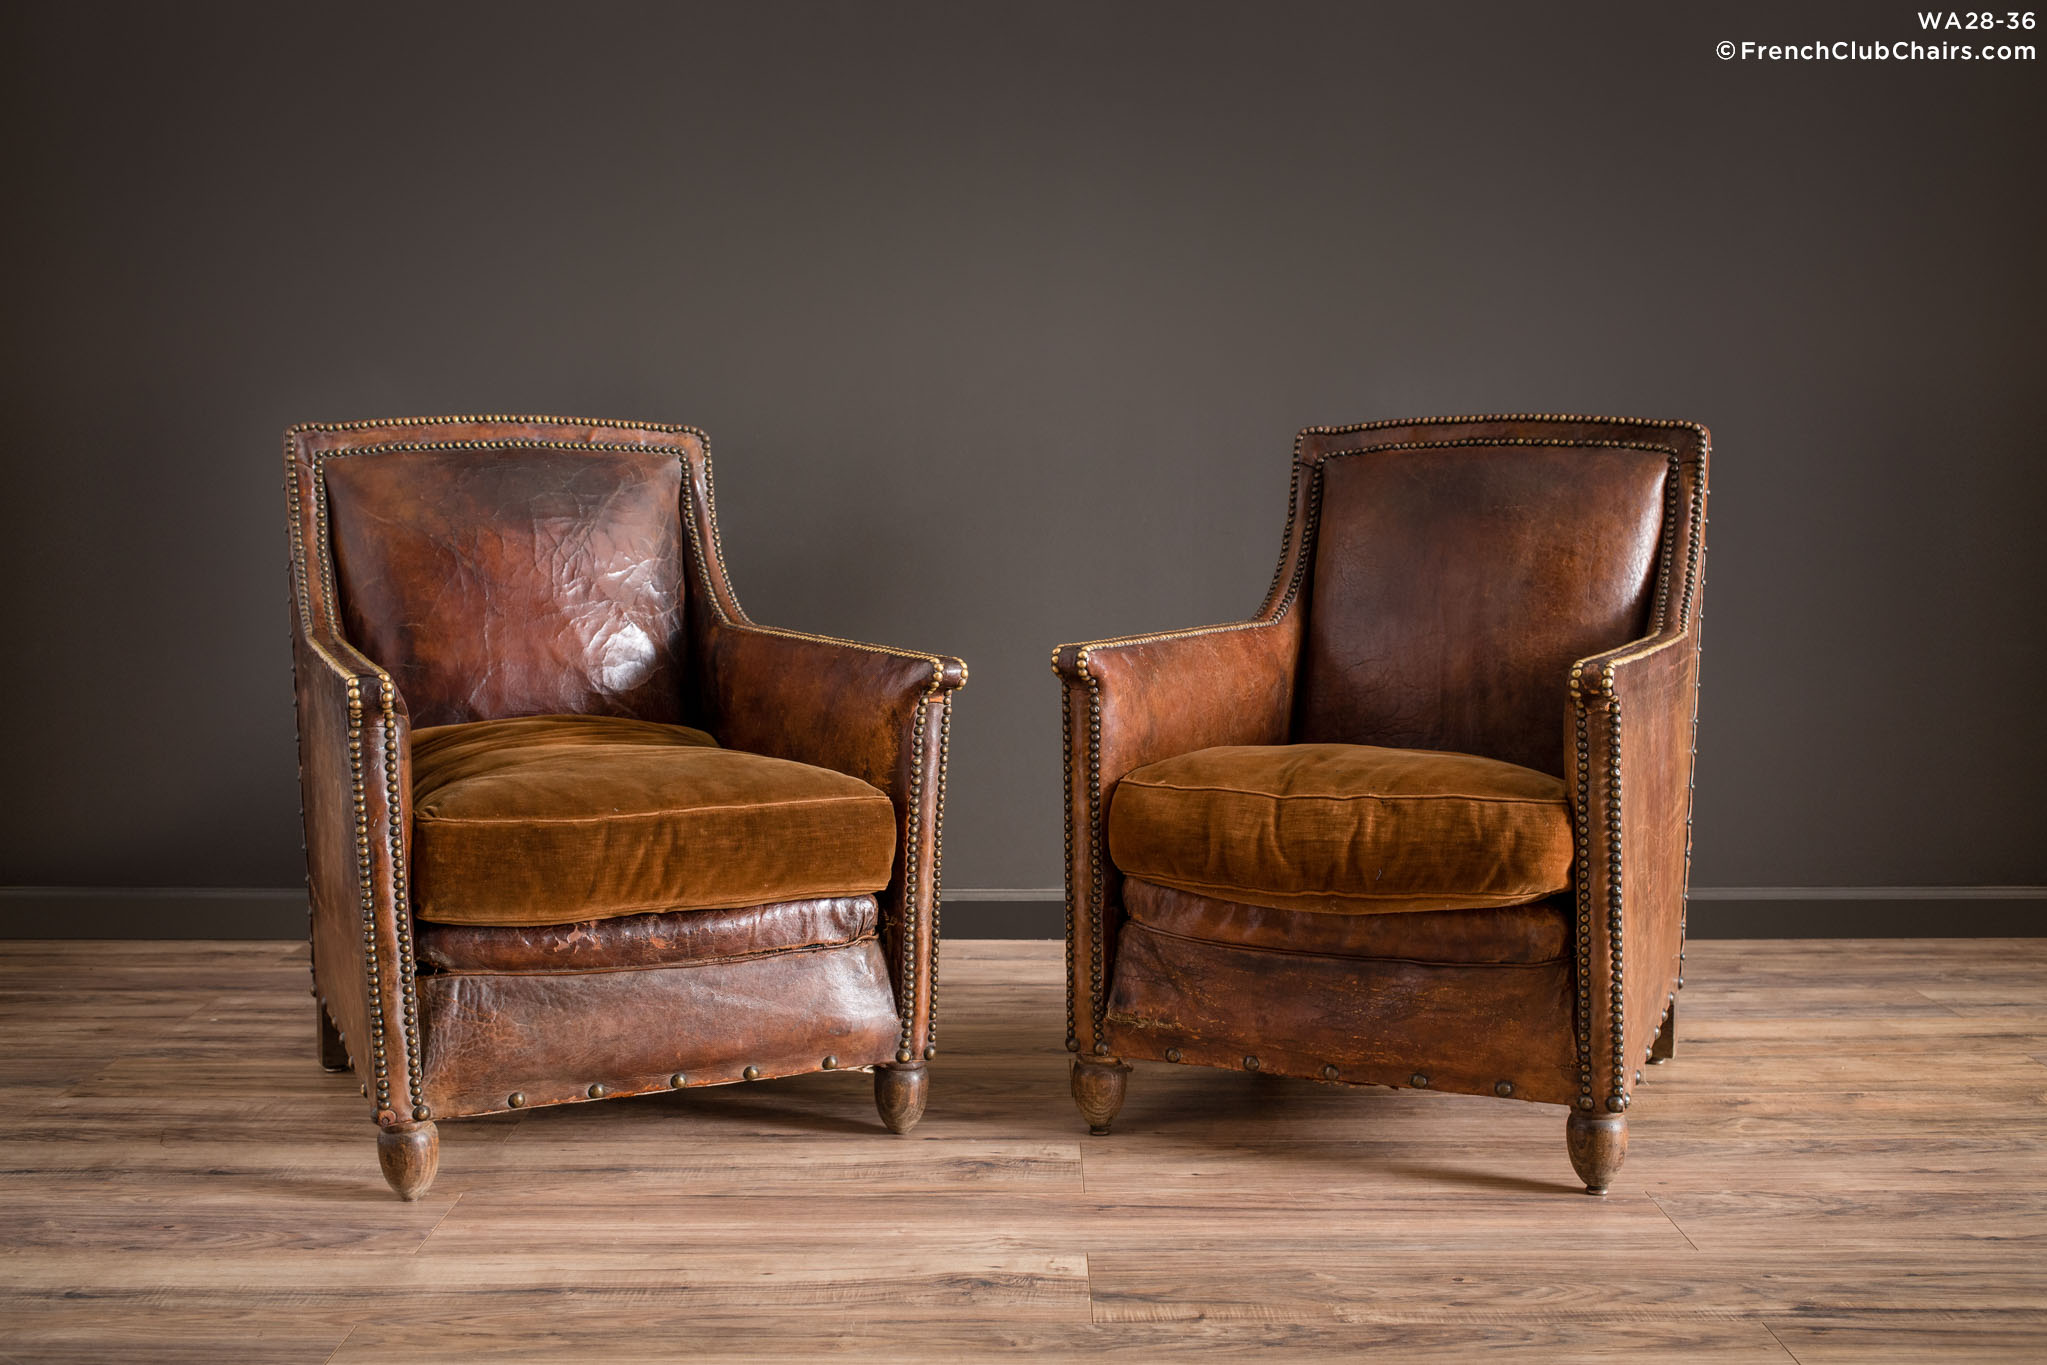 WA_28-36_Nation_Nailed_Dark_Pair_R_1TQ1-williams-antiks-leather-french-club-chair-wa_fcccom